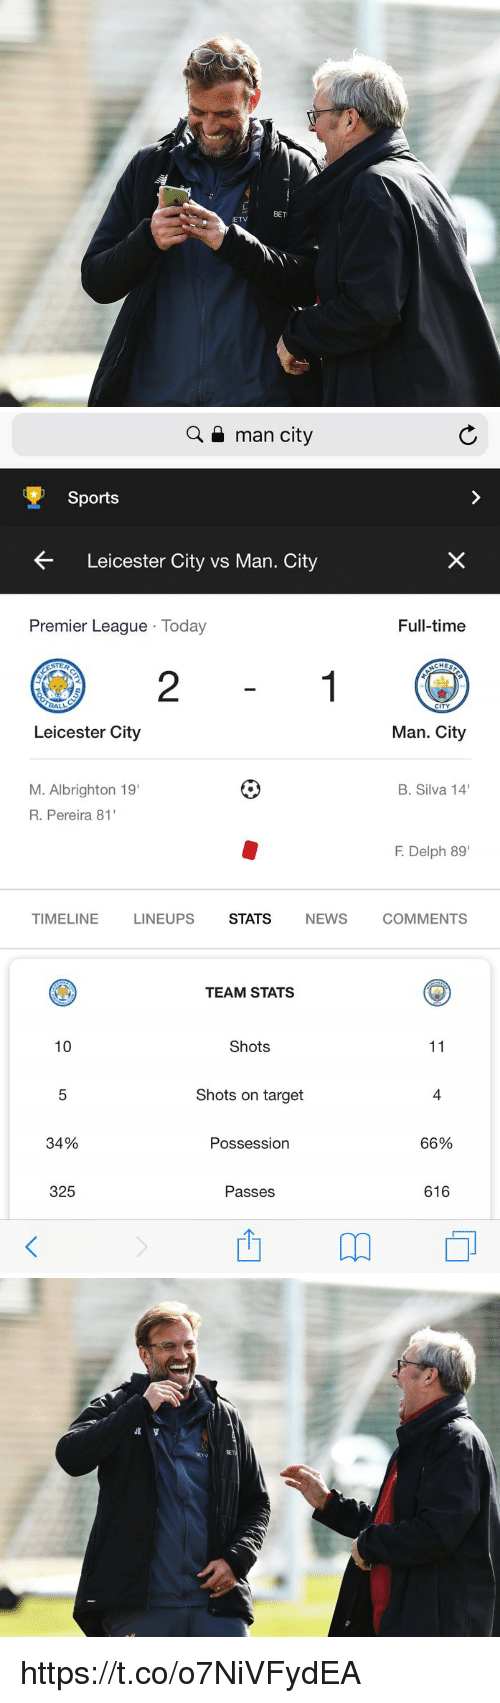 "Memes, News, and Premier League: L.  125  BET  ETV   Q a man city  Sports  Leicester City vs Man. City  Premier League Today  Full-time  CHES  2  CITY  Leicester City  Man. City  M. Albrighton 19  R. Pereira 81  B. Silva 14  F. Delph 89""  TIMELINE  LINEUPS  STATS  NEWS  COMMENTS  TEAM STATS  10  Shots  Shots on target  4  34%  Possession  66%  325  Passes  616 https://t.co/o7NiVFydEA"